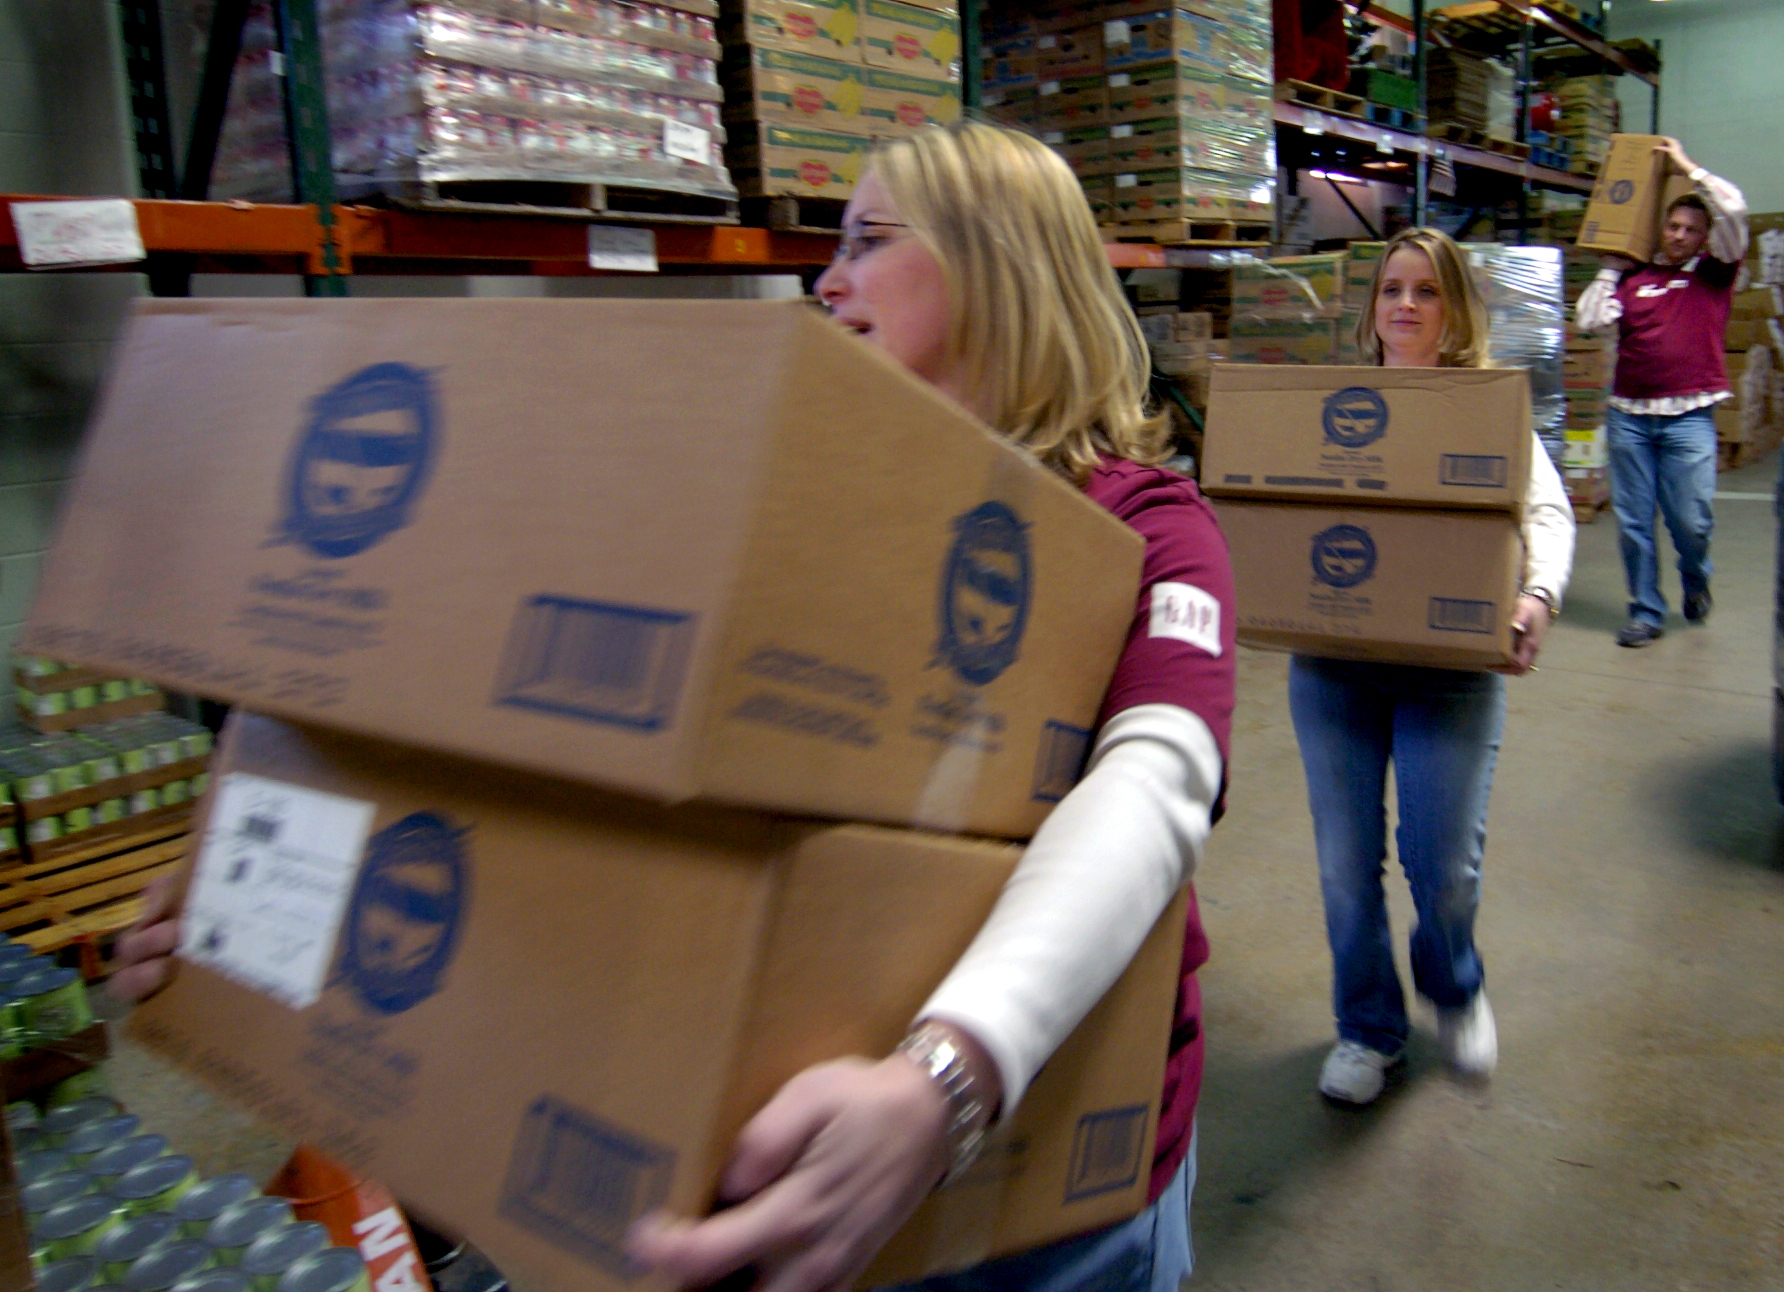 DENVER, COLO. - MARCH 4, 2005 - Patty Colee , front, Chandra Lay , middle, and Patrick Batten , rear, of the Gap, Inc. store at the Park Meadows Shopping Center , three of the store's volunteers at Food Bank of the Rockies in Den